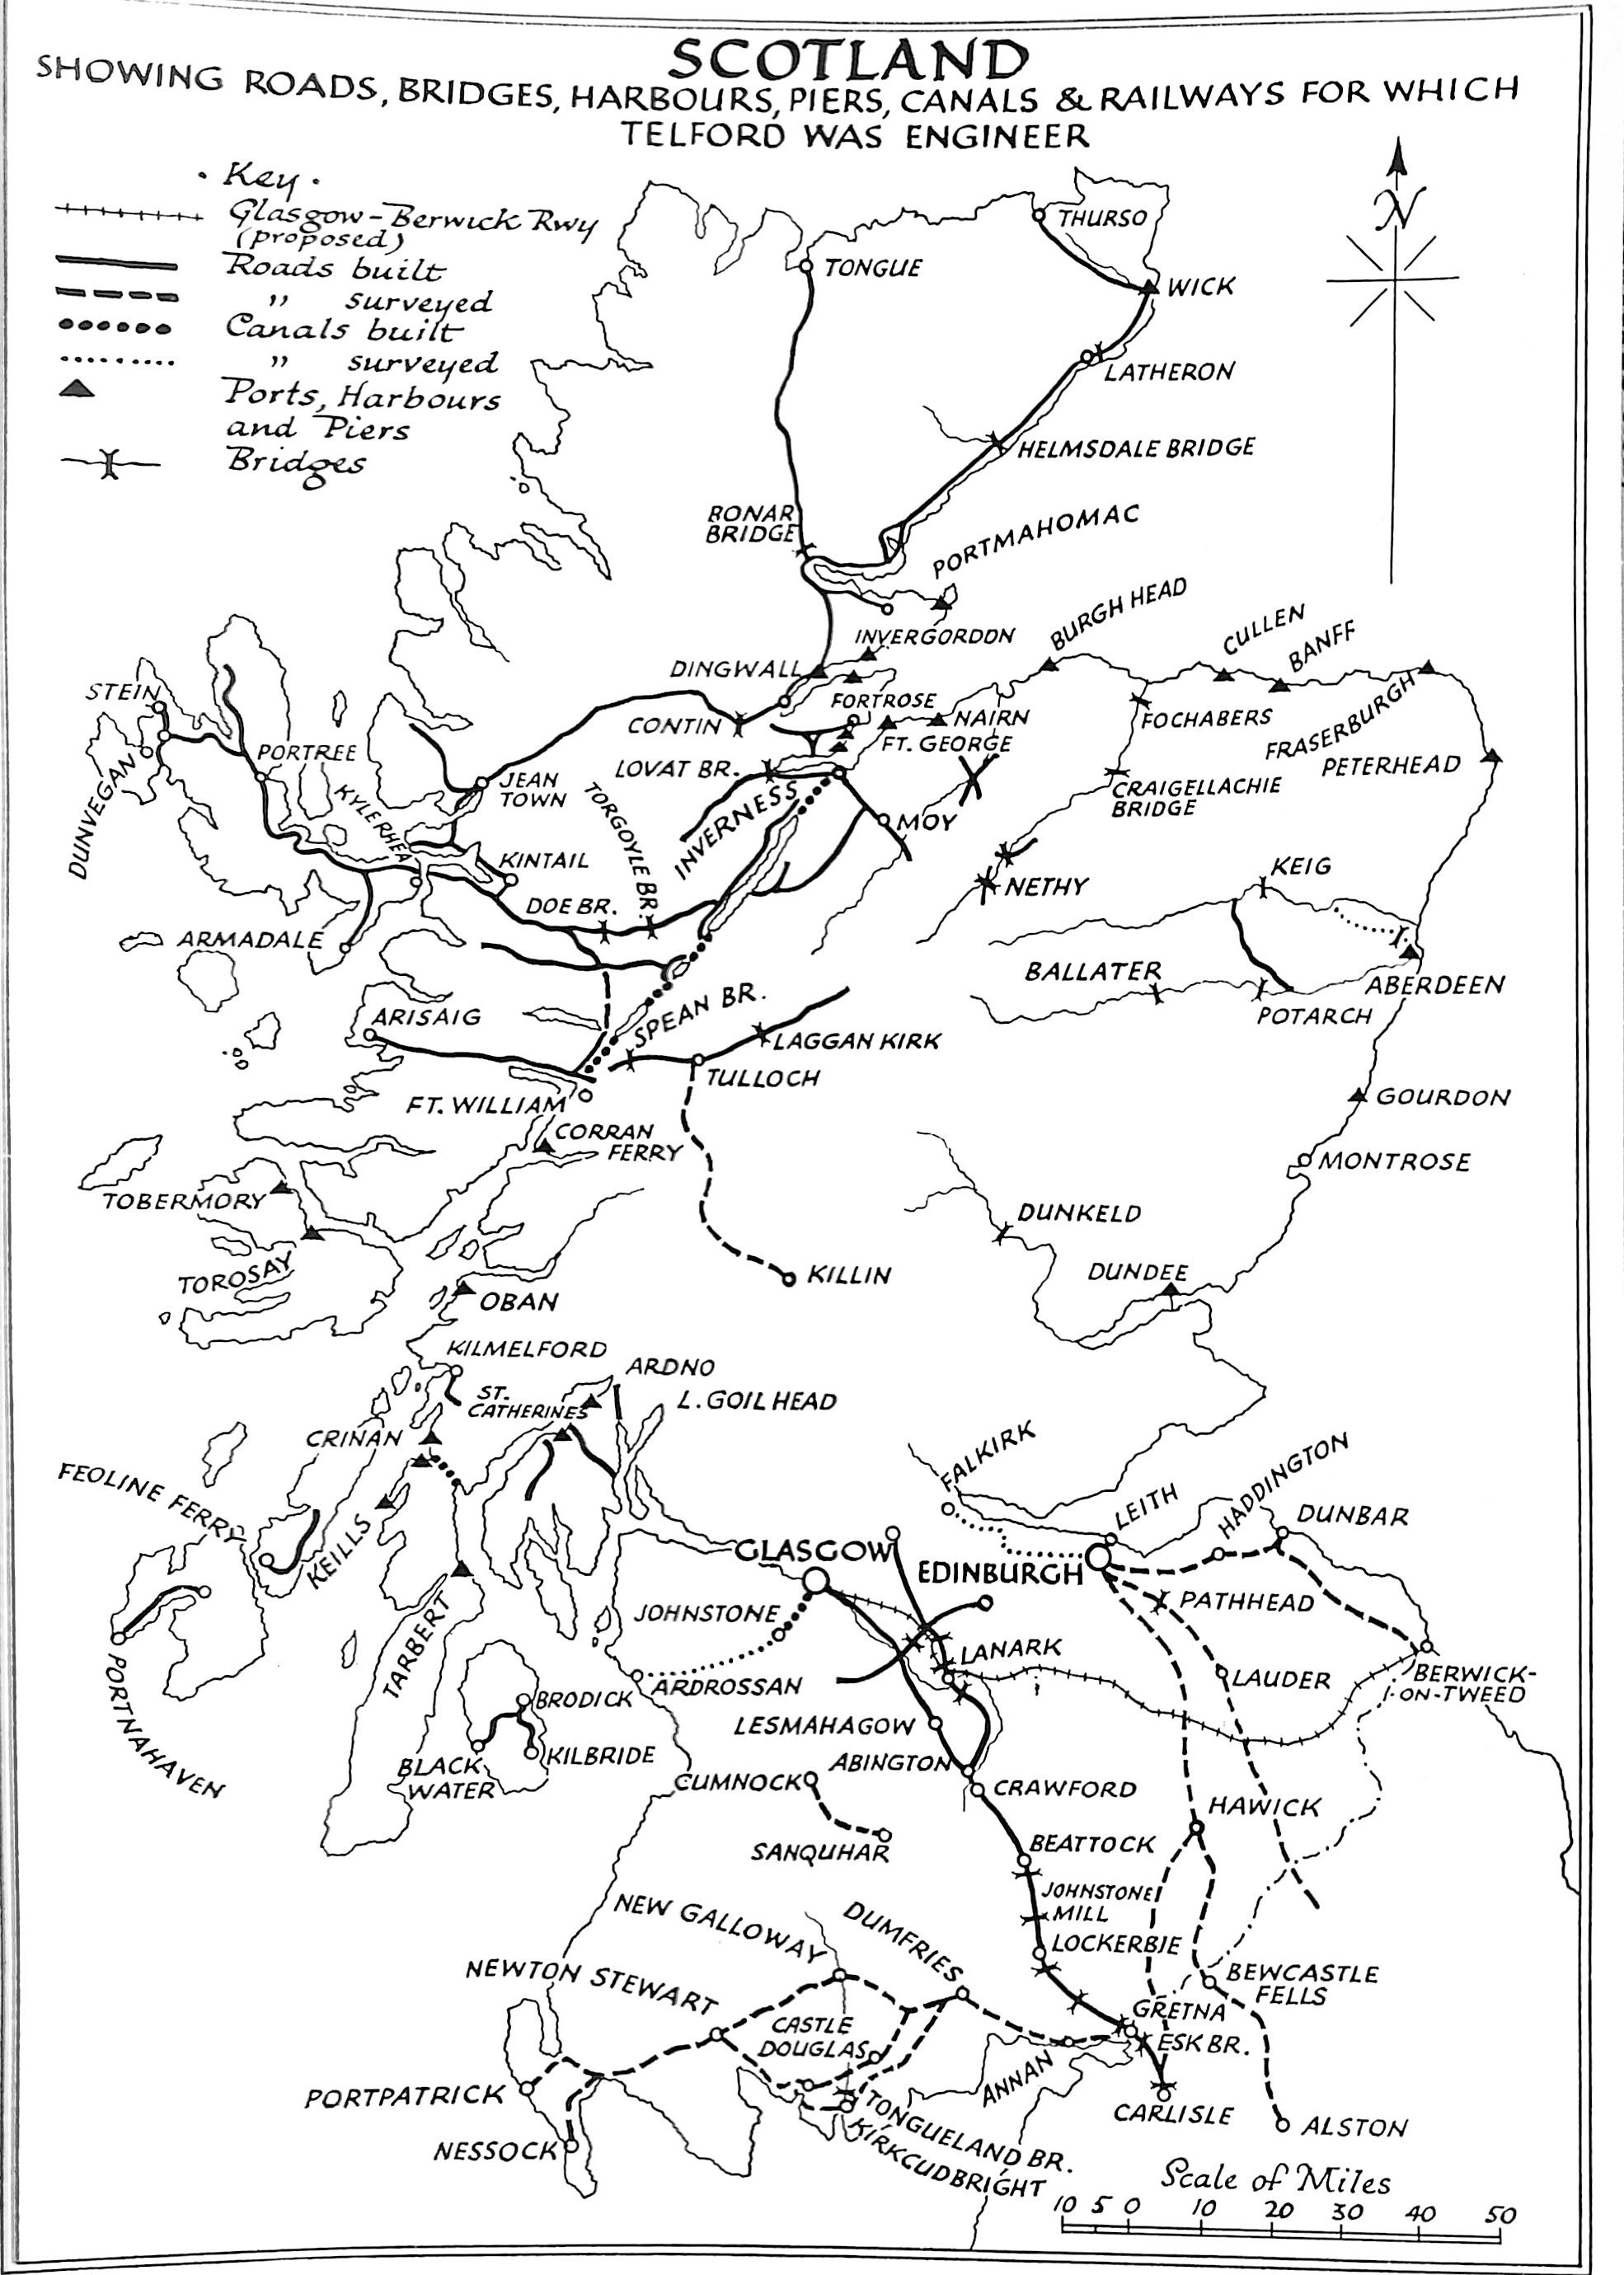 Map of Scotland Showing Roads, Bridges, Harbours, Piers, Canals & Railways for Which Telford Was Engineer